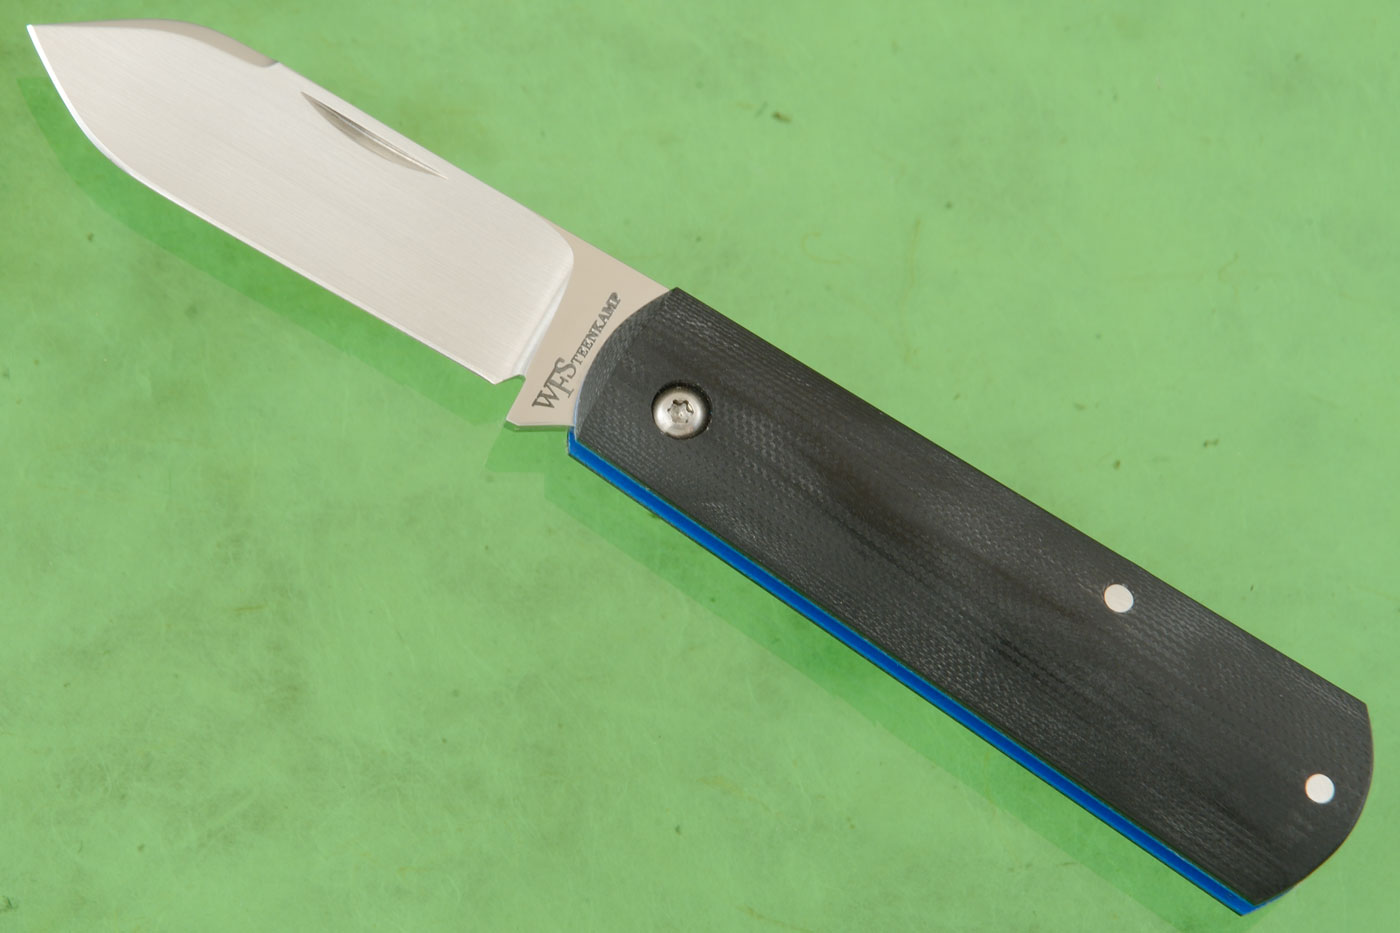 Barlow Friction Folder with Black and Blue G10